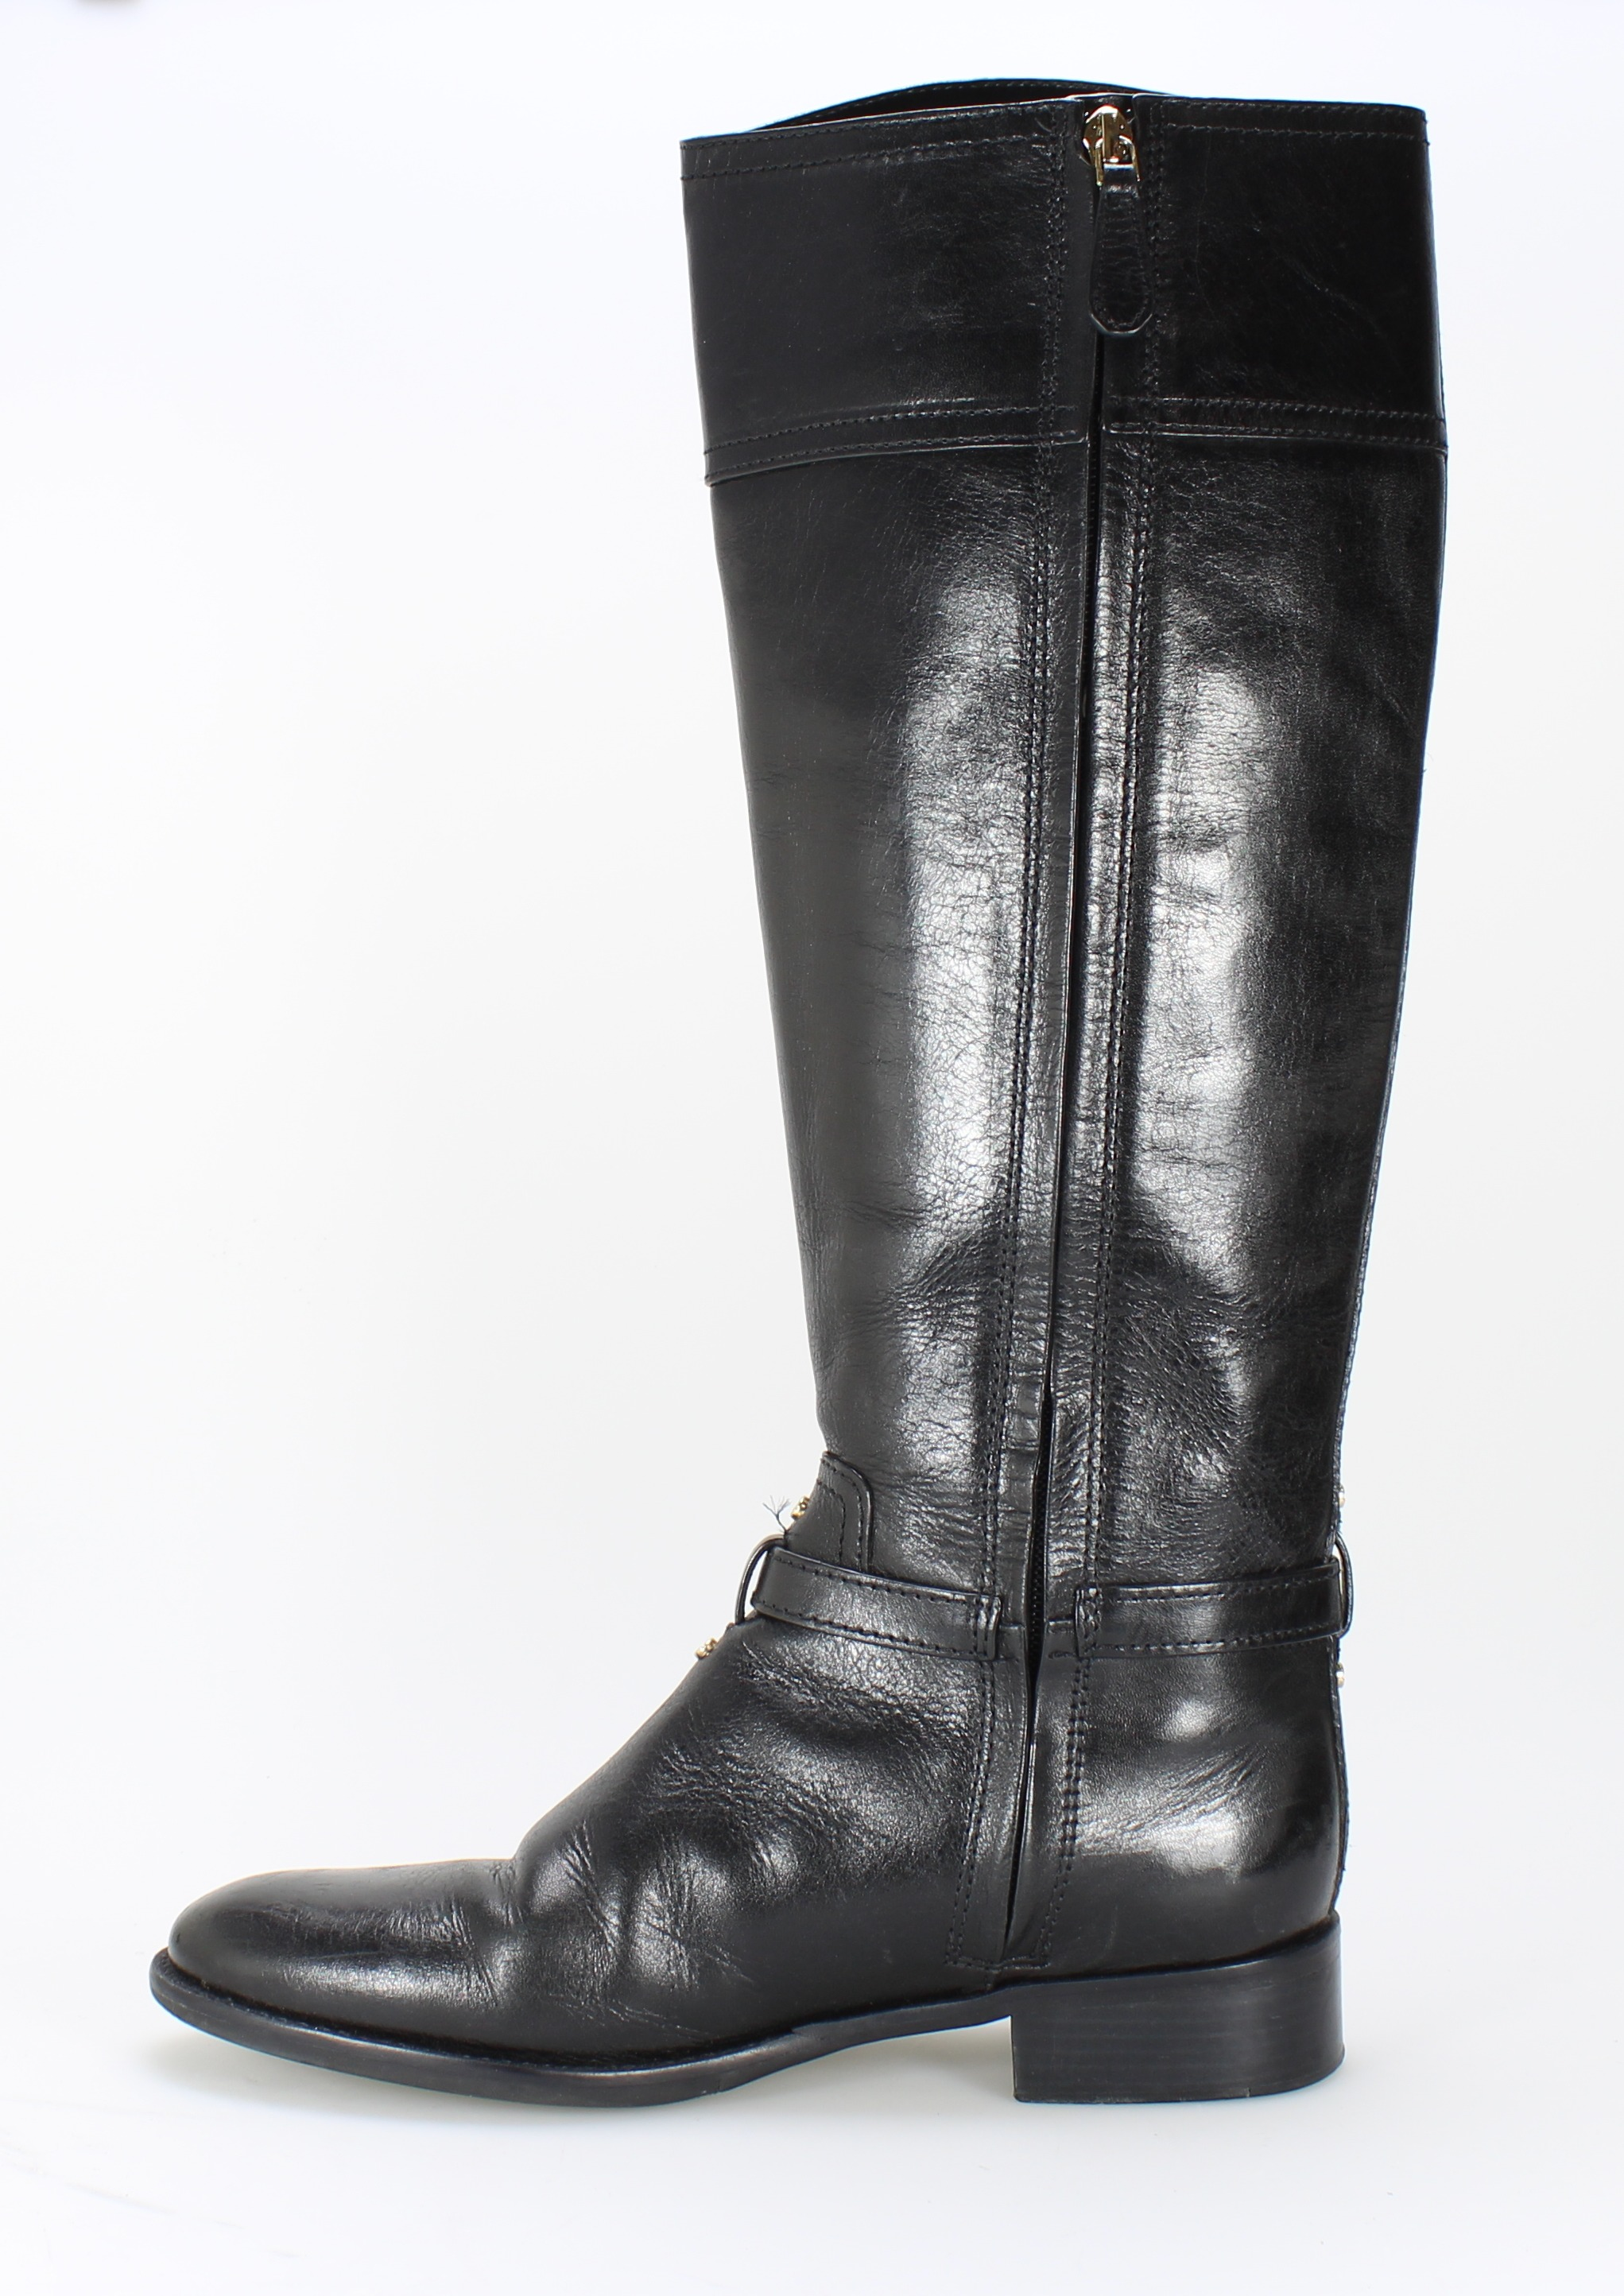 burch new black gold logo shoes 8m knee high leather